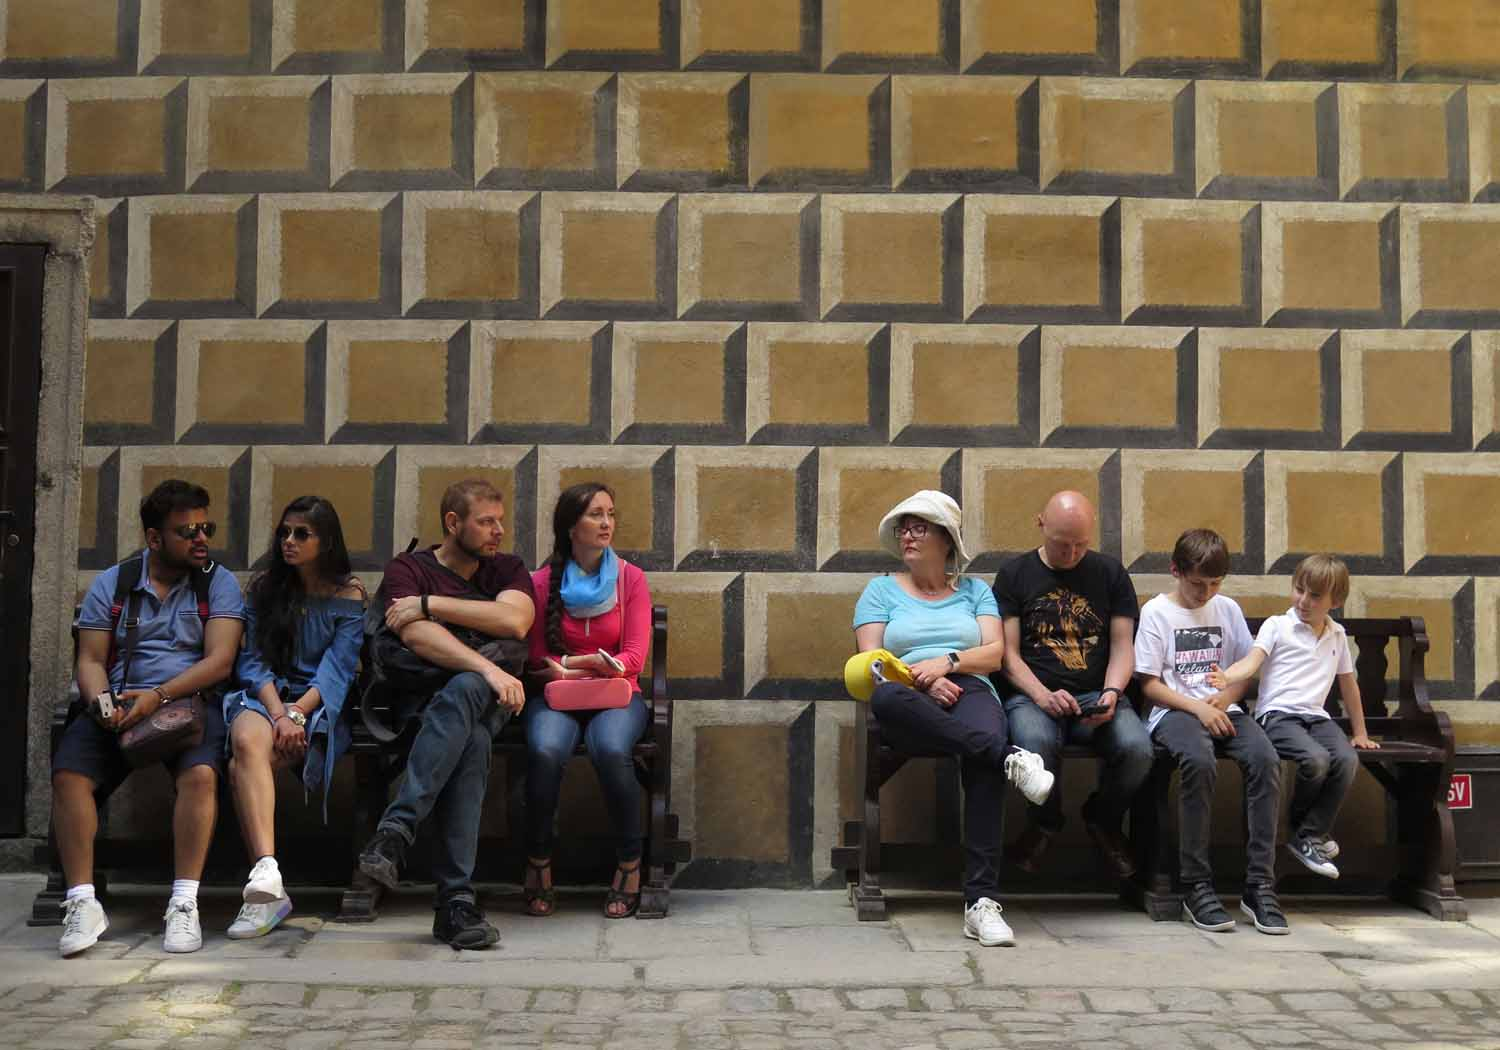 czech-republic-czesky-krumlov-tourists